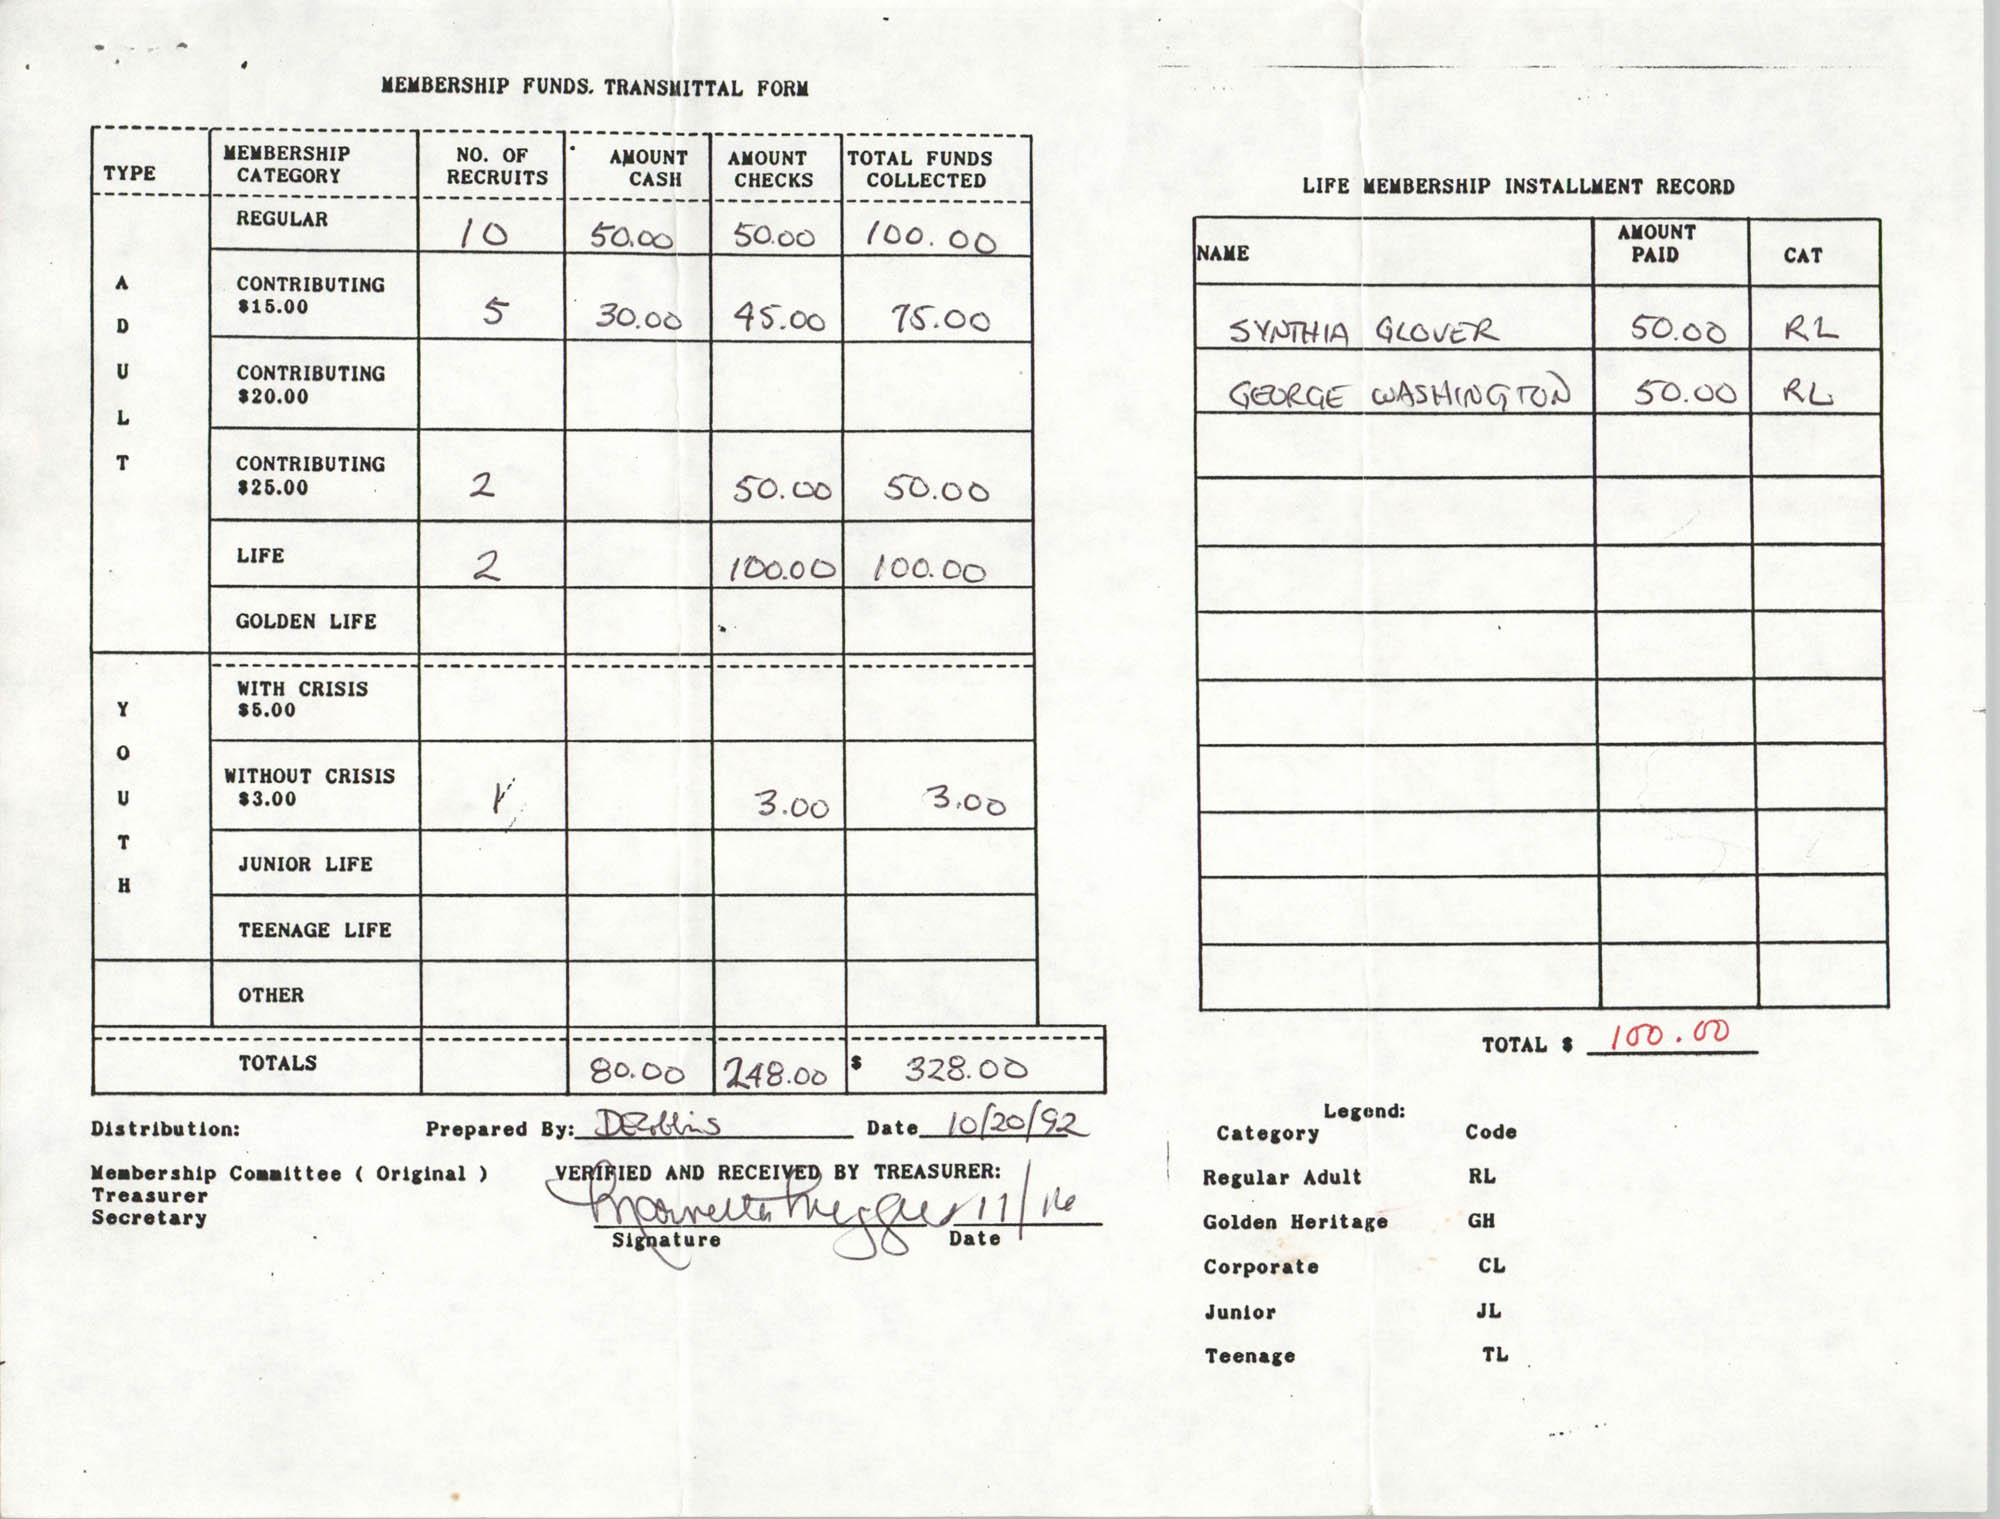 Charleston Branch of the NAACP Funds Transmittal Forms, November 1992, Page 1